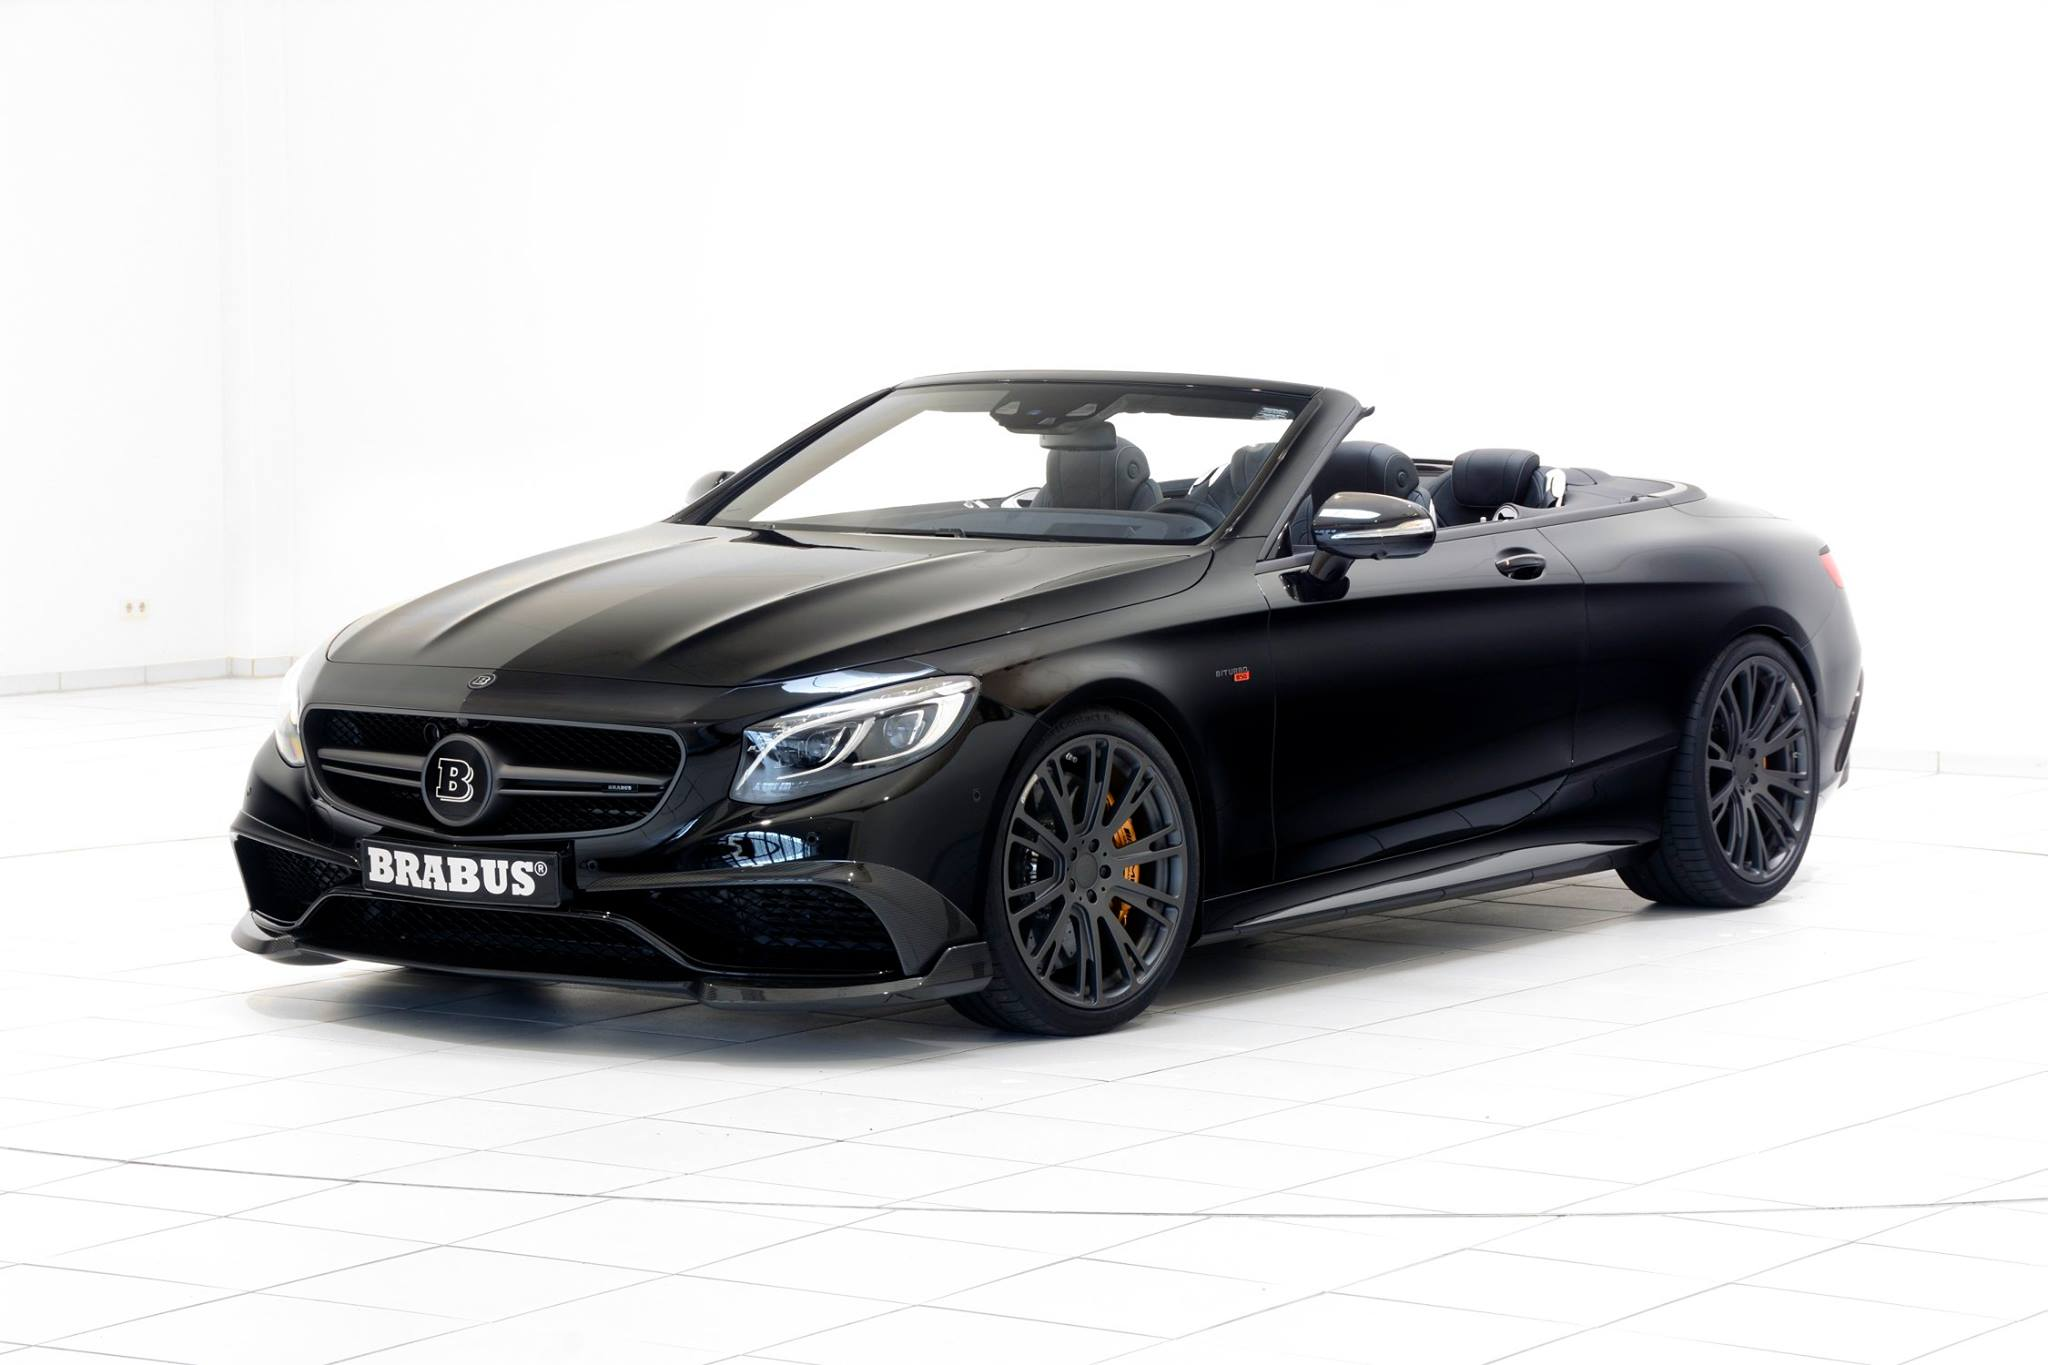 Brabus 850 Mercedes S Class Cabrio Is More Than An AMG